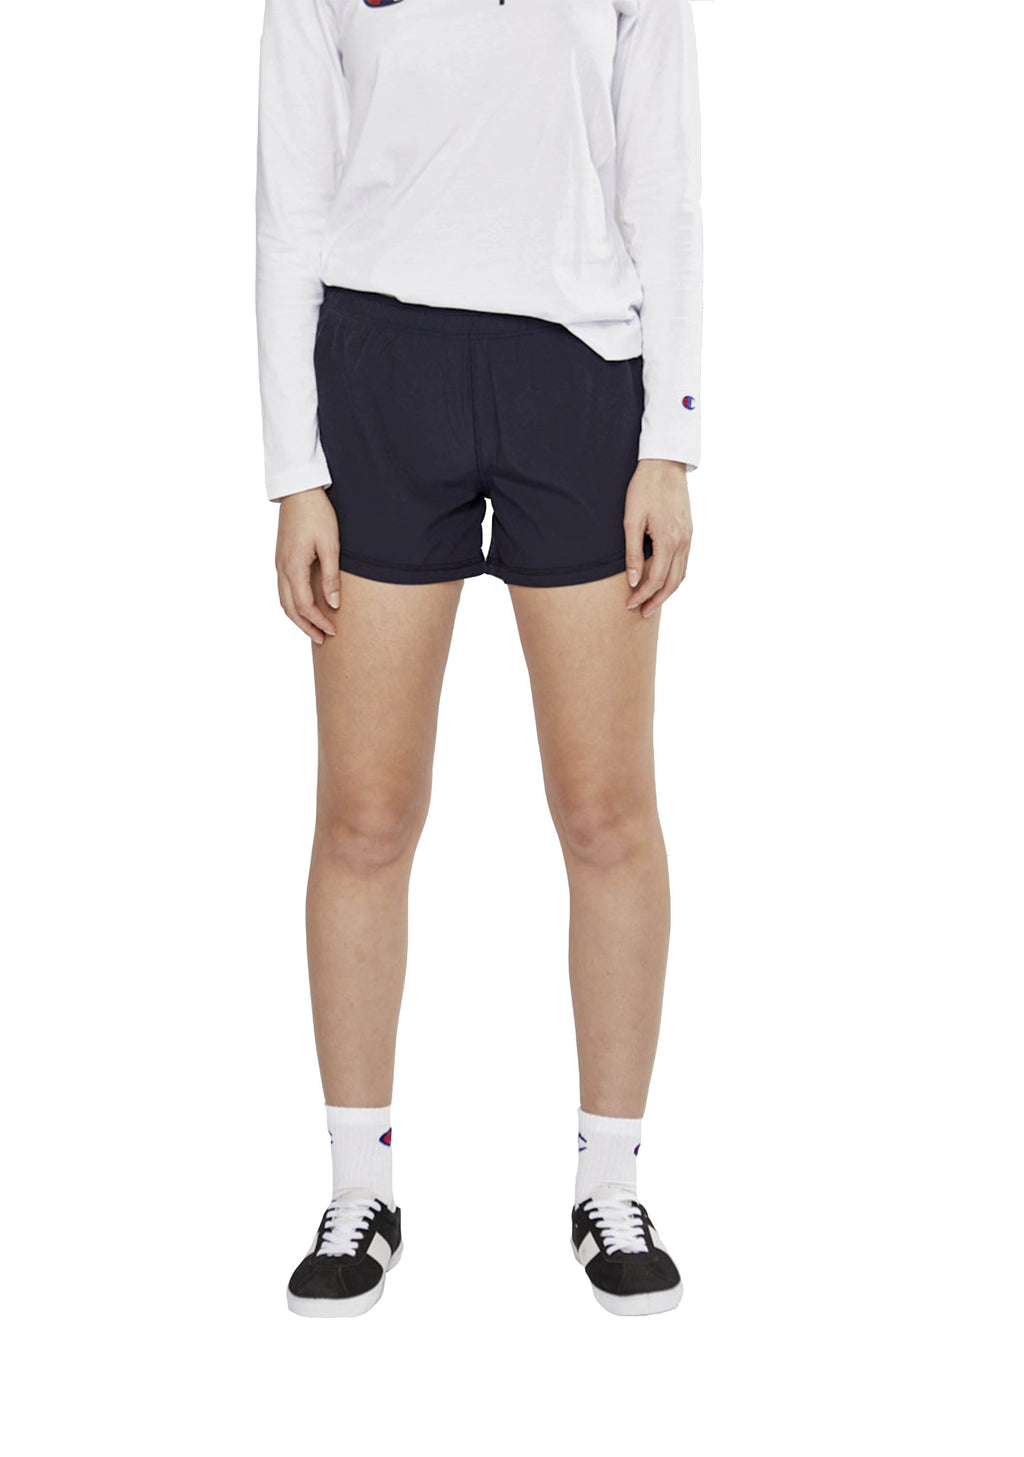 CHAMPION ACTIVE WOVEN SHORT NAVY WOMENS <br> C1221H C0S